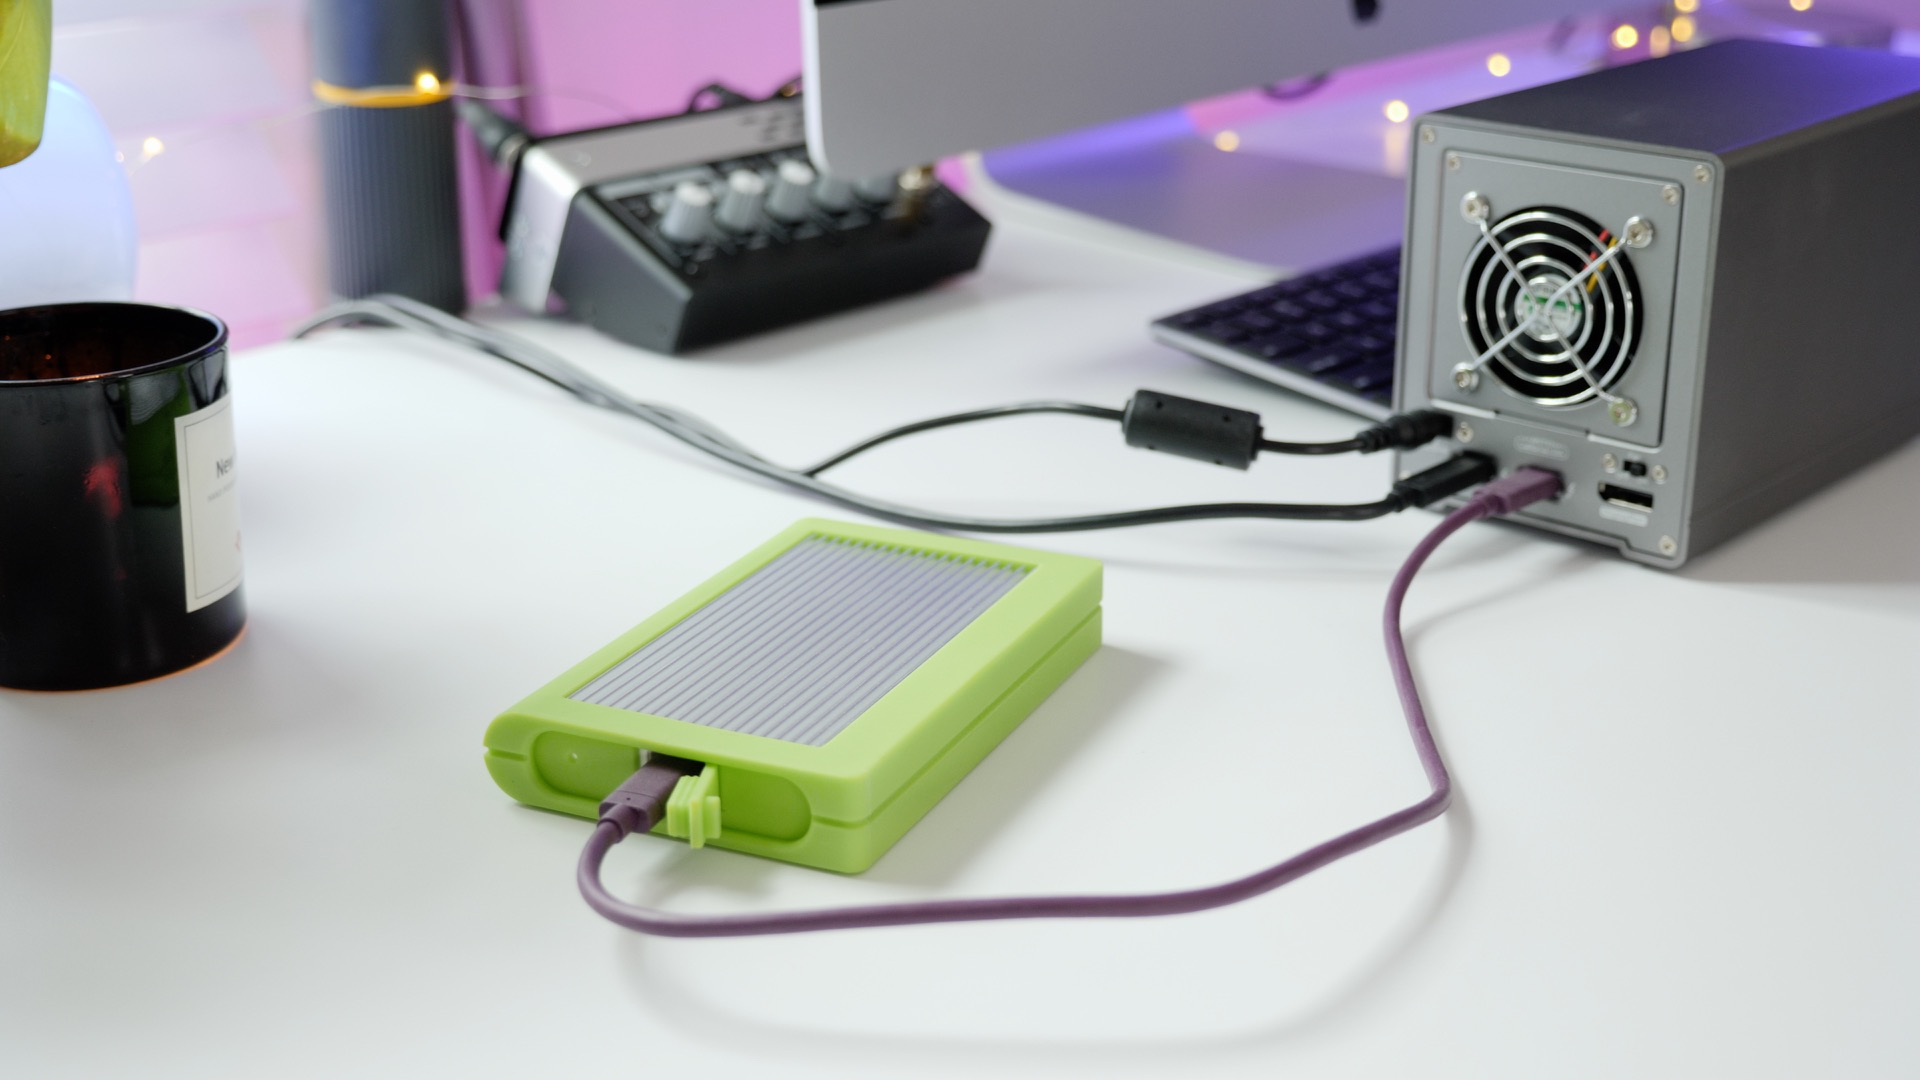 Daisy-chaining a USB 3.1 gen 2-enabled SSD